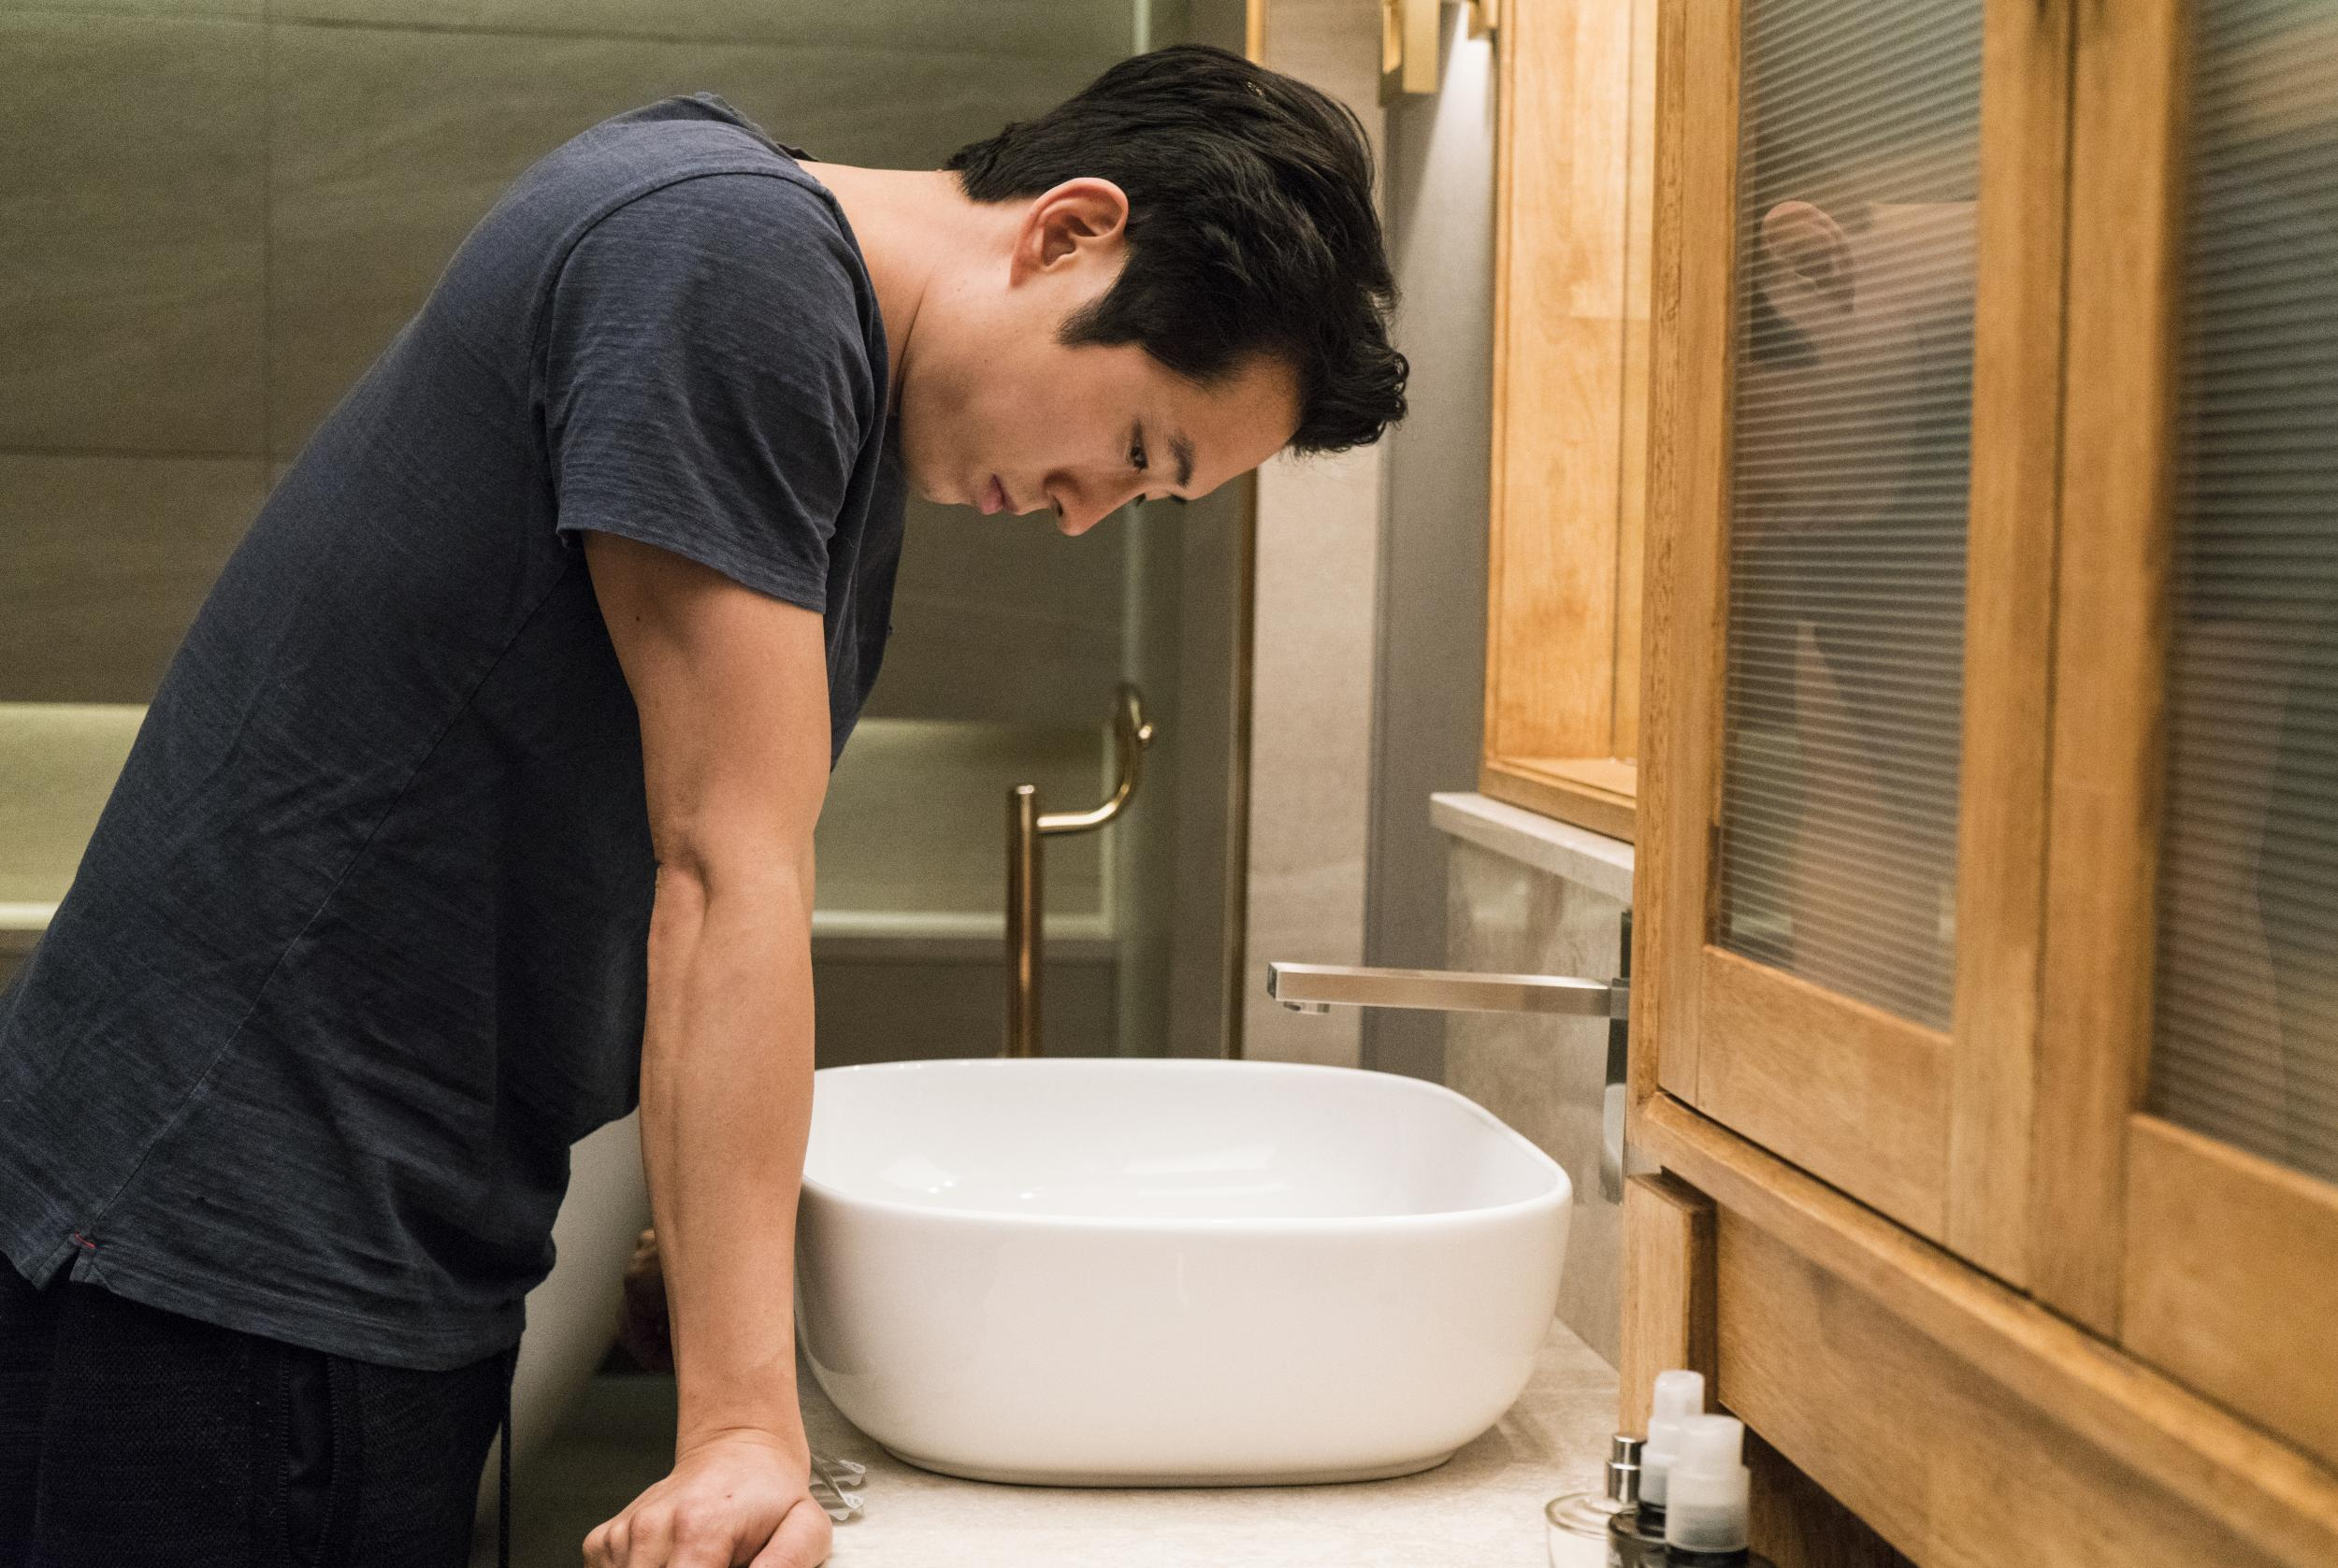 . Burning actor Steven Yeun interview   I feel like a man with no